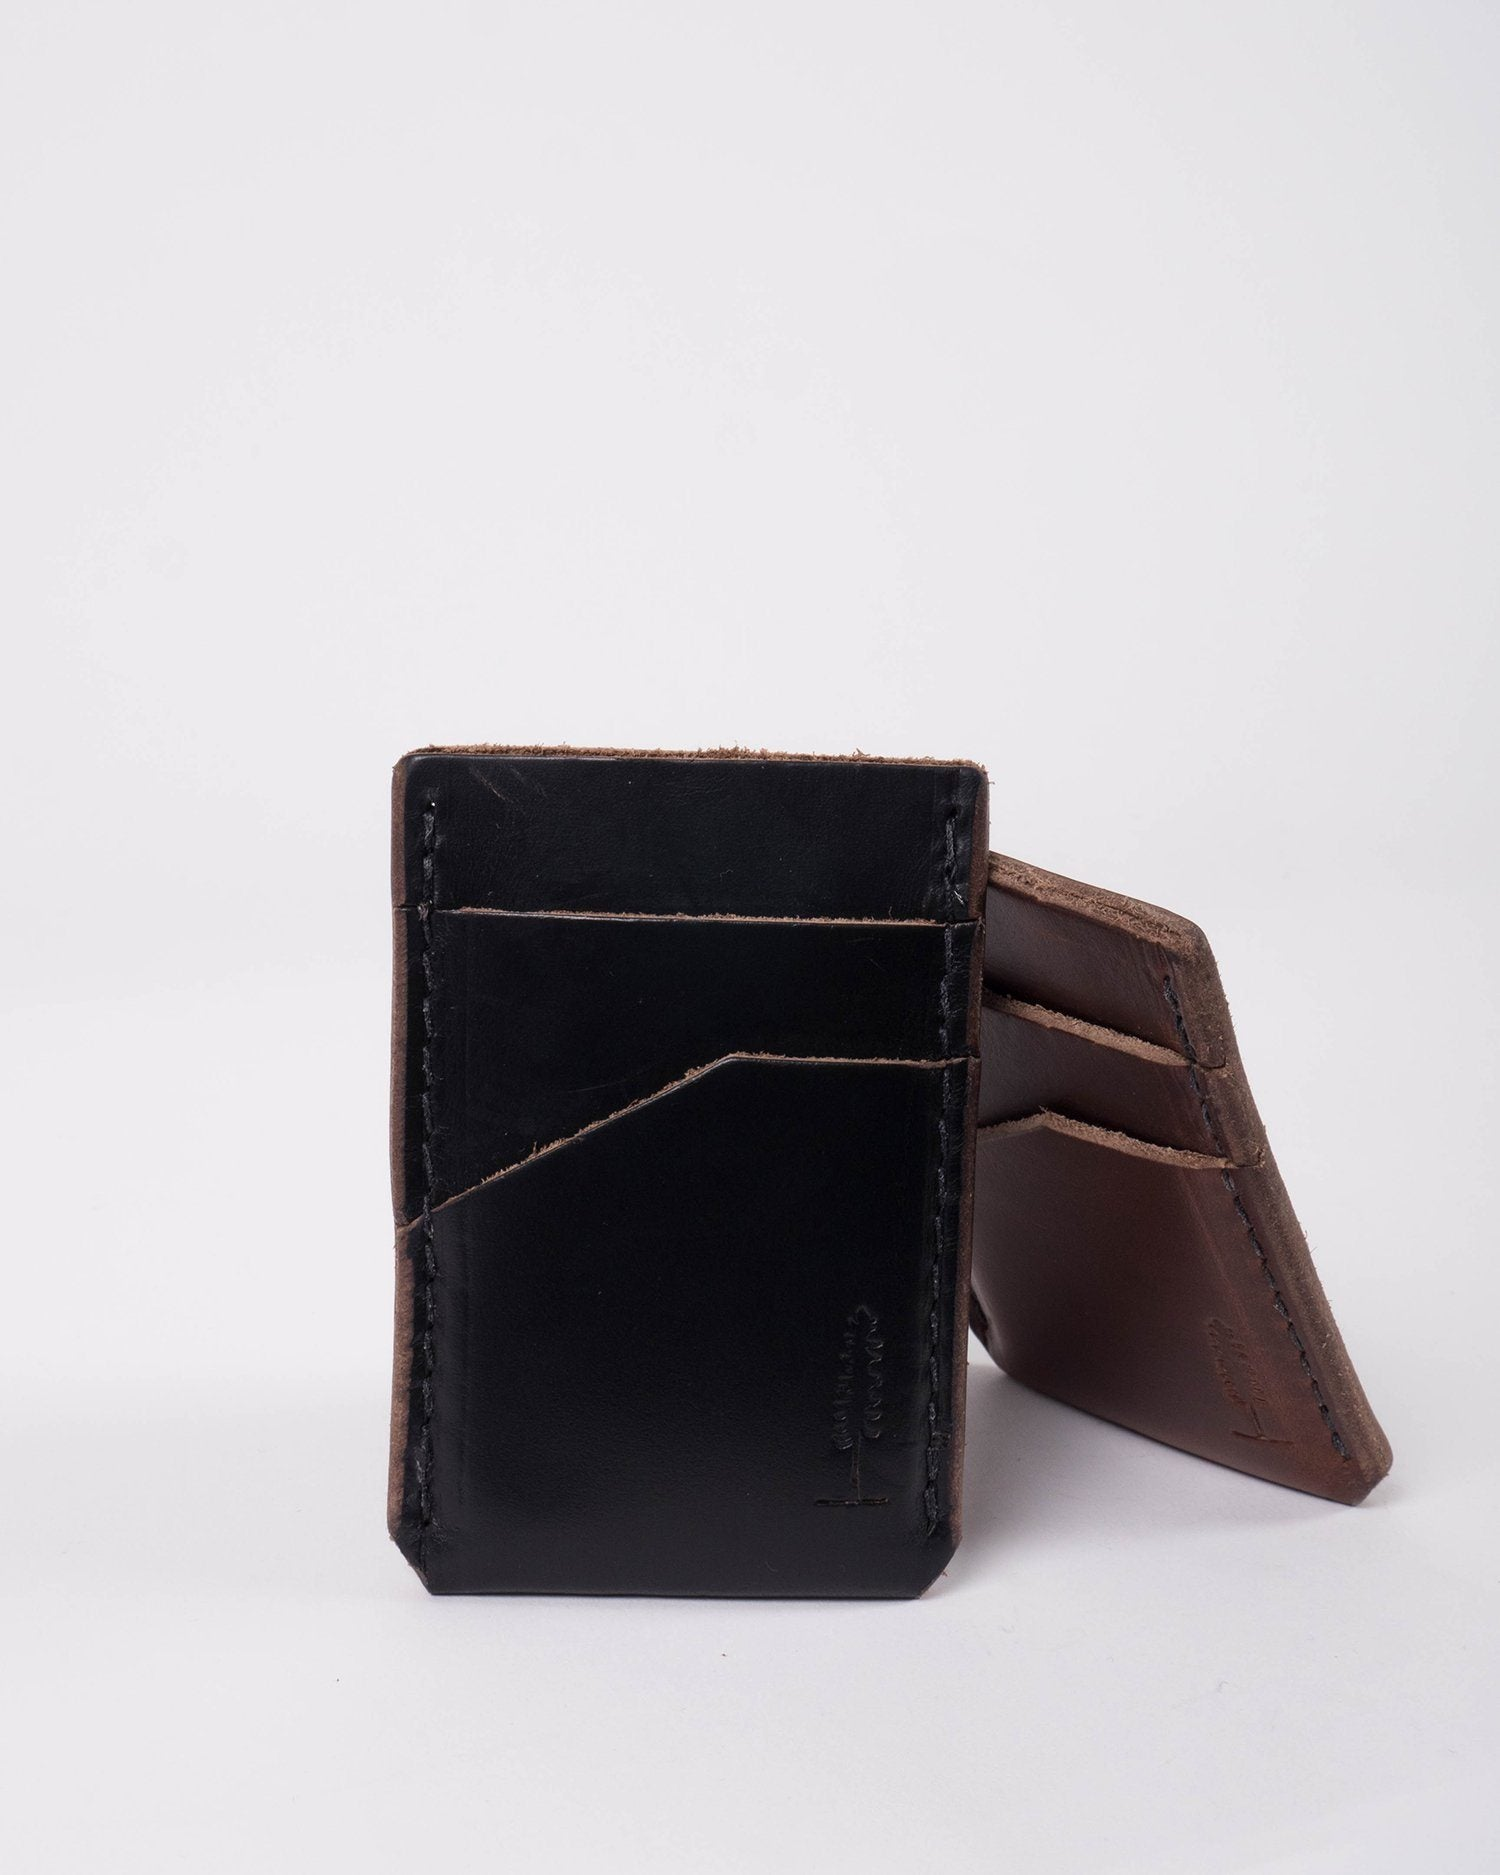 ecologyst x Populess Larson Wallet in Black #colour_black